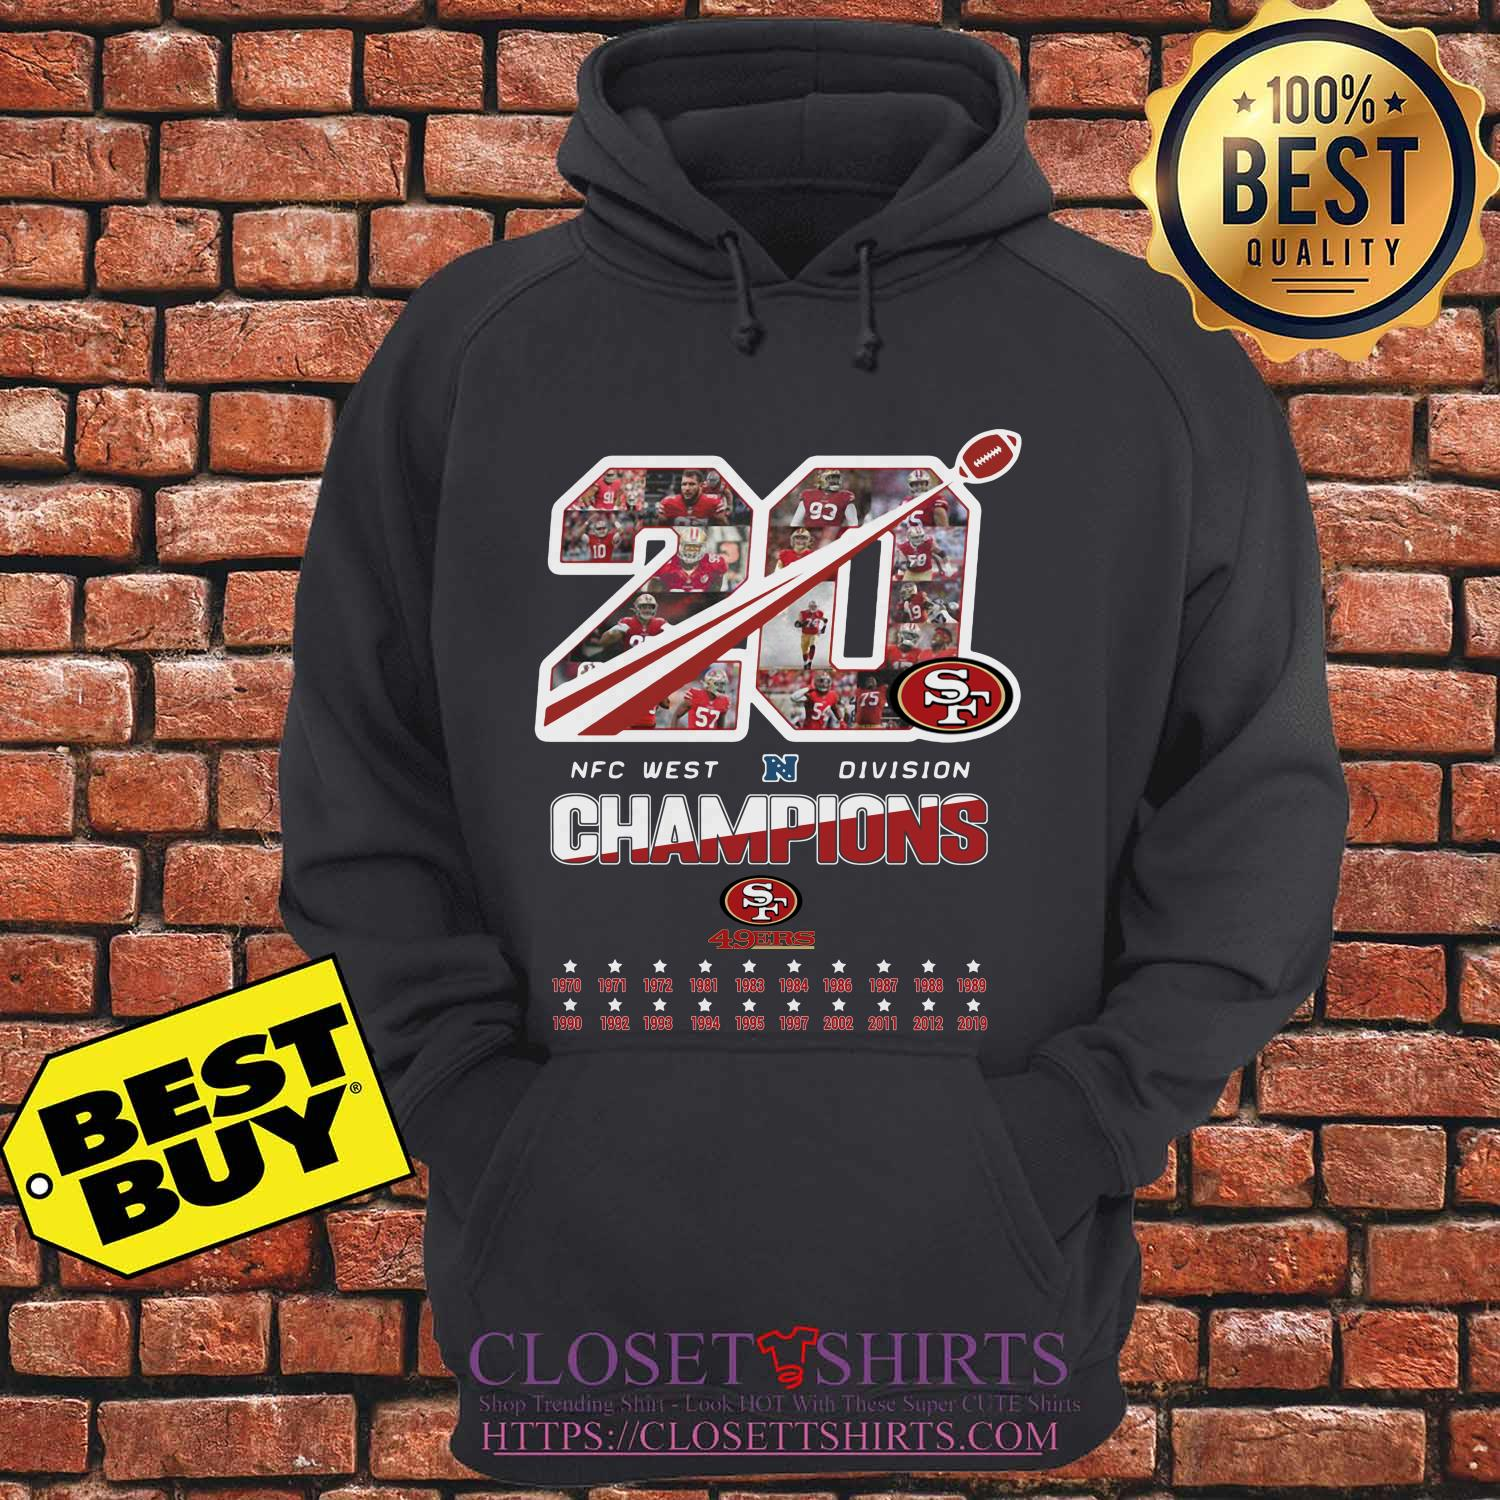 San Francisco 49ers 20 Nfc West Division Champions Hoodie